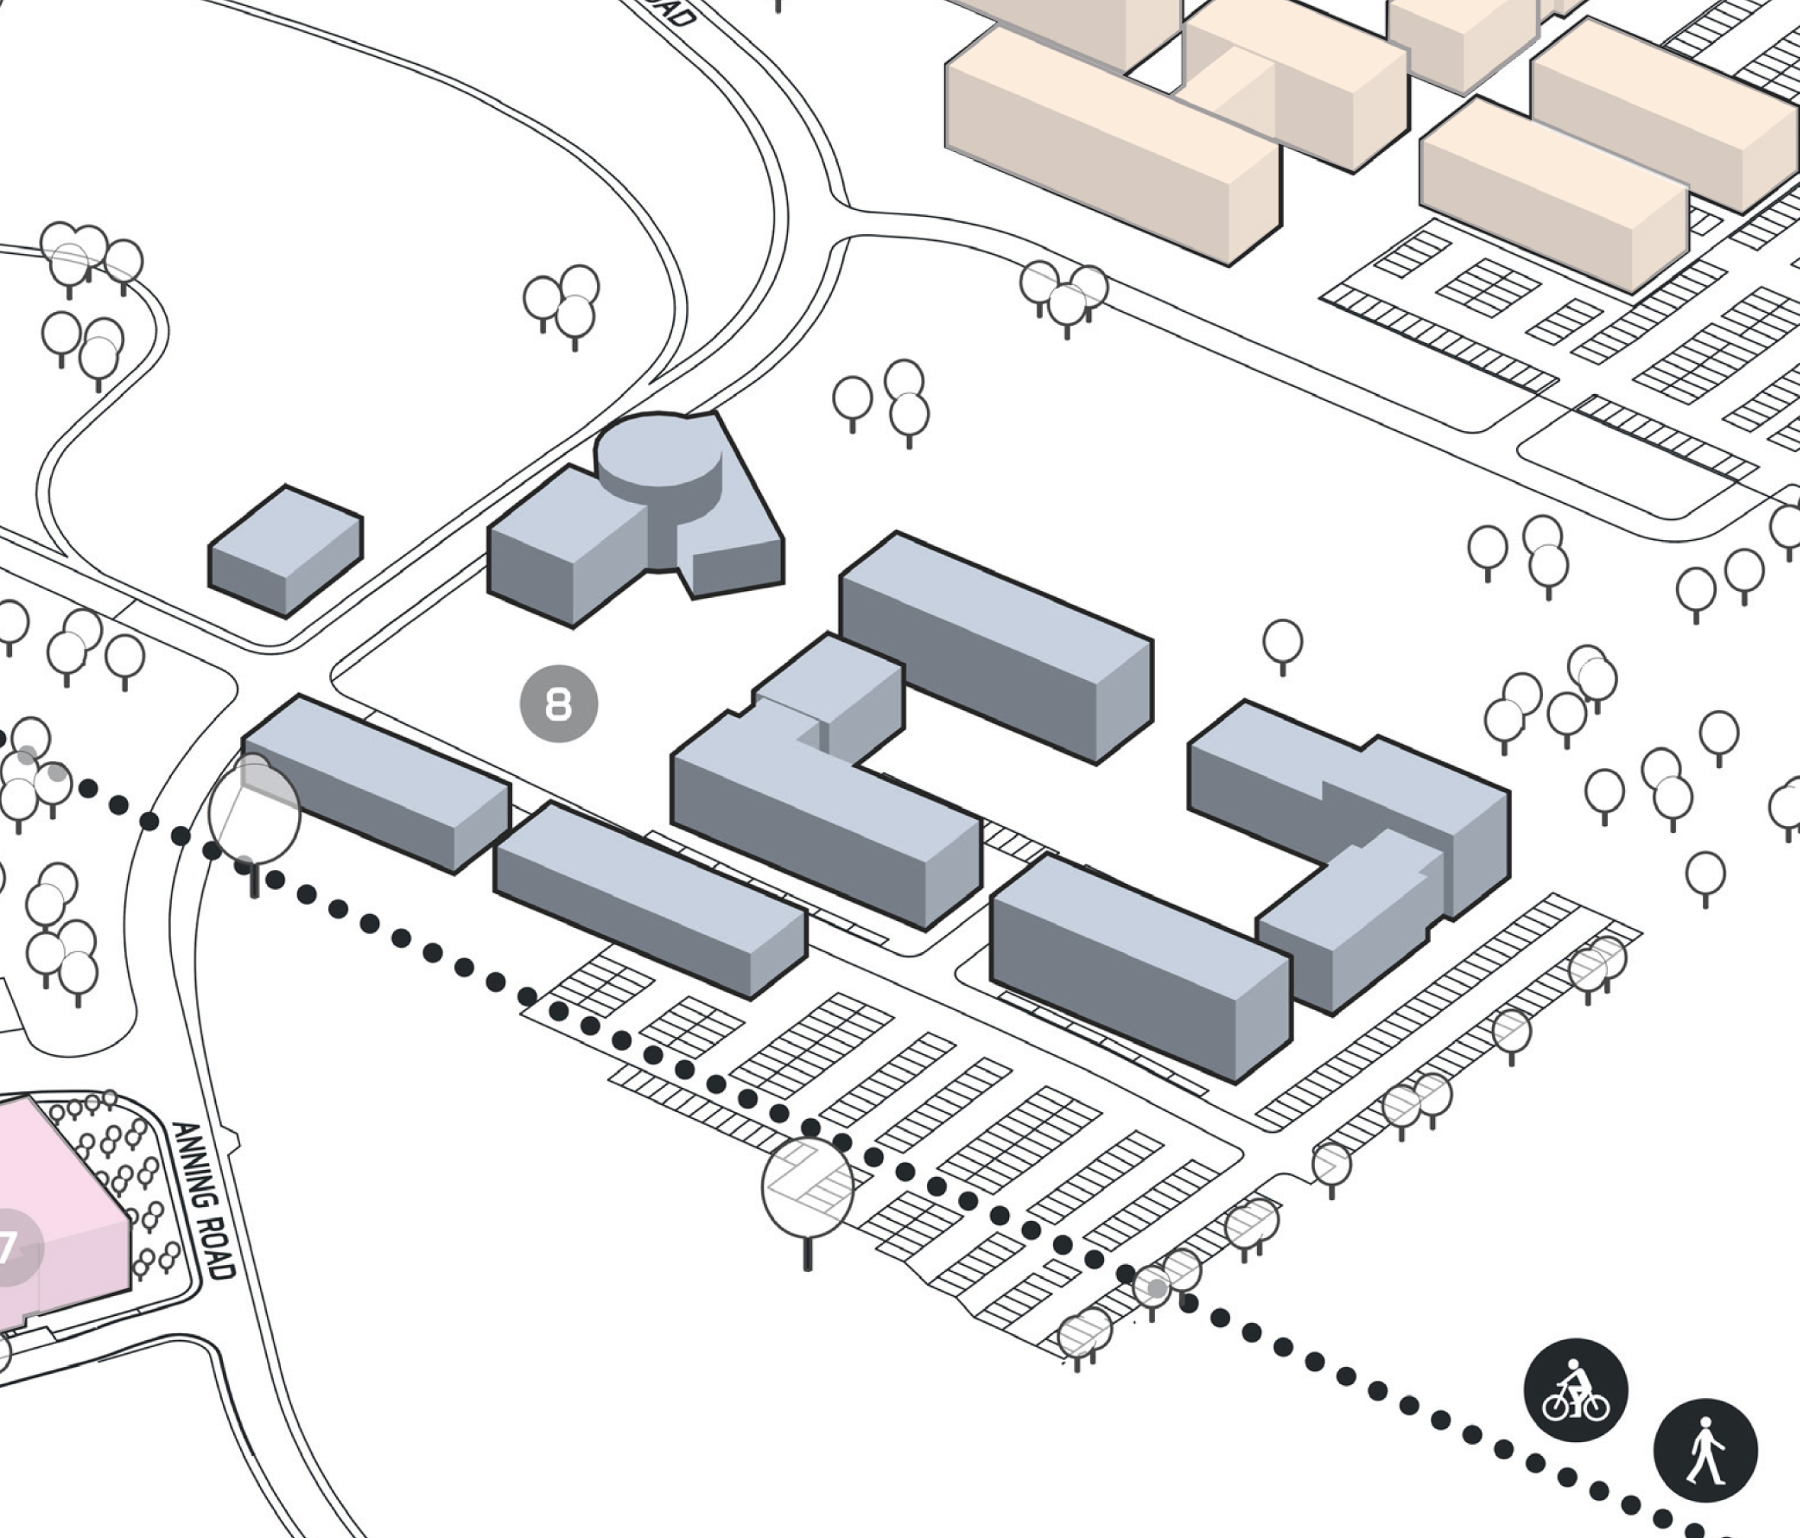 Park Plan highlighting cluster E Building 8